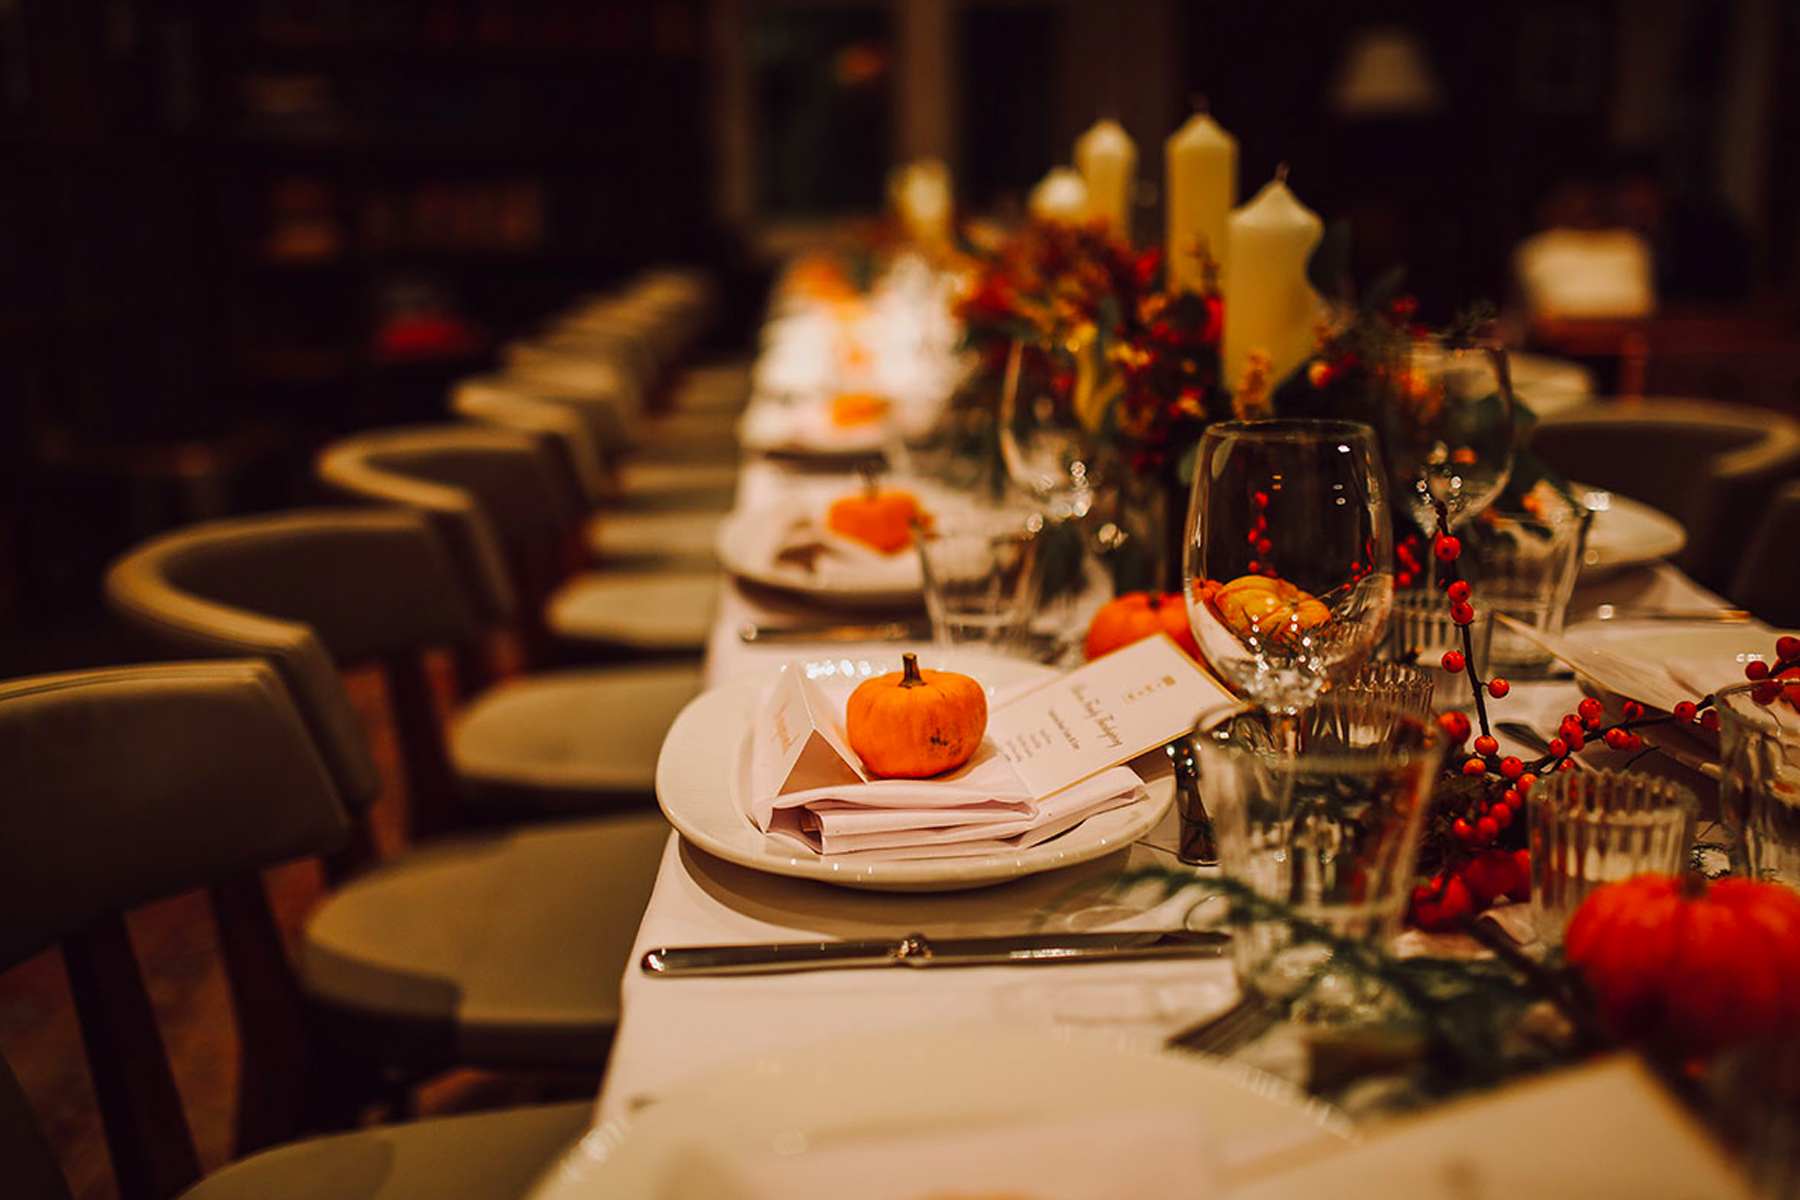 Fall themed restaurant setting with long table and chairs